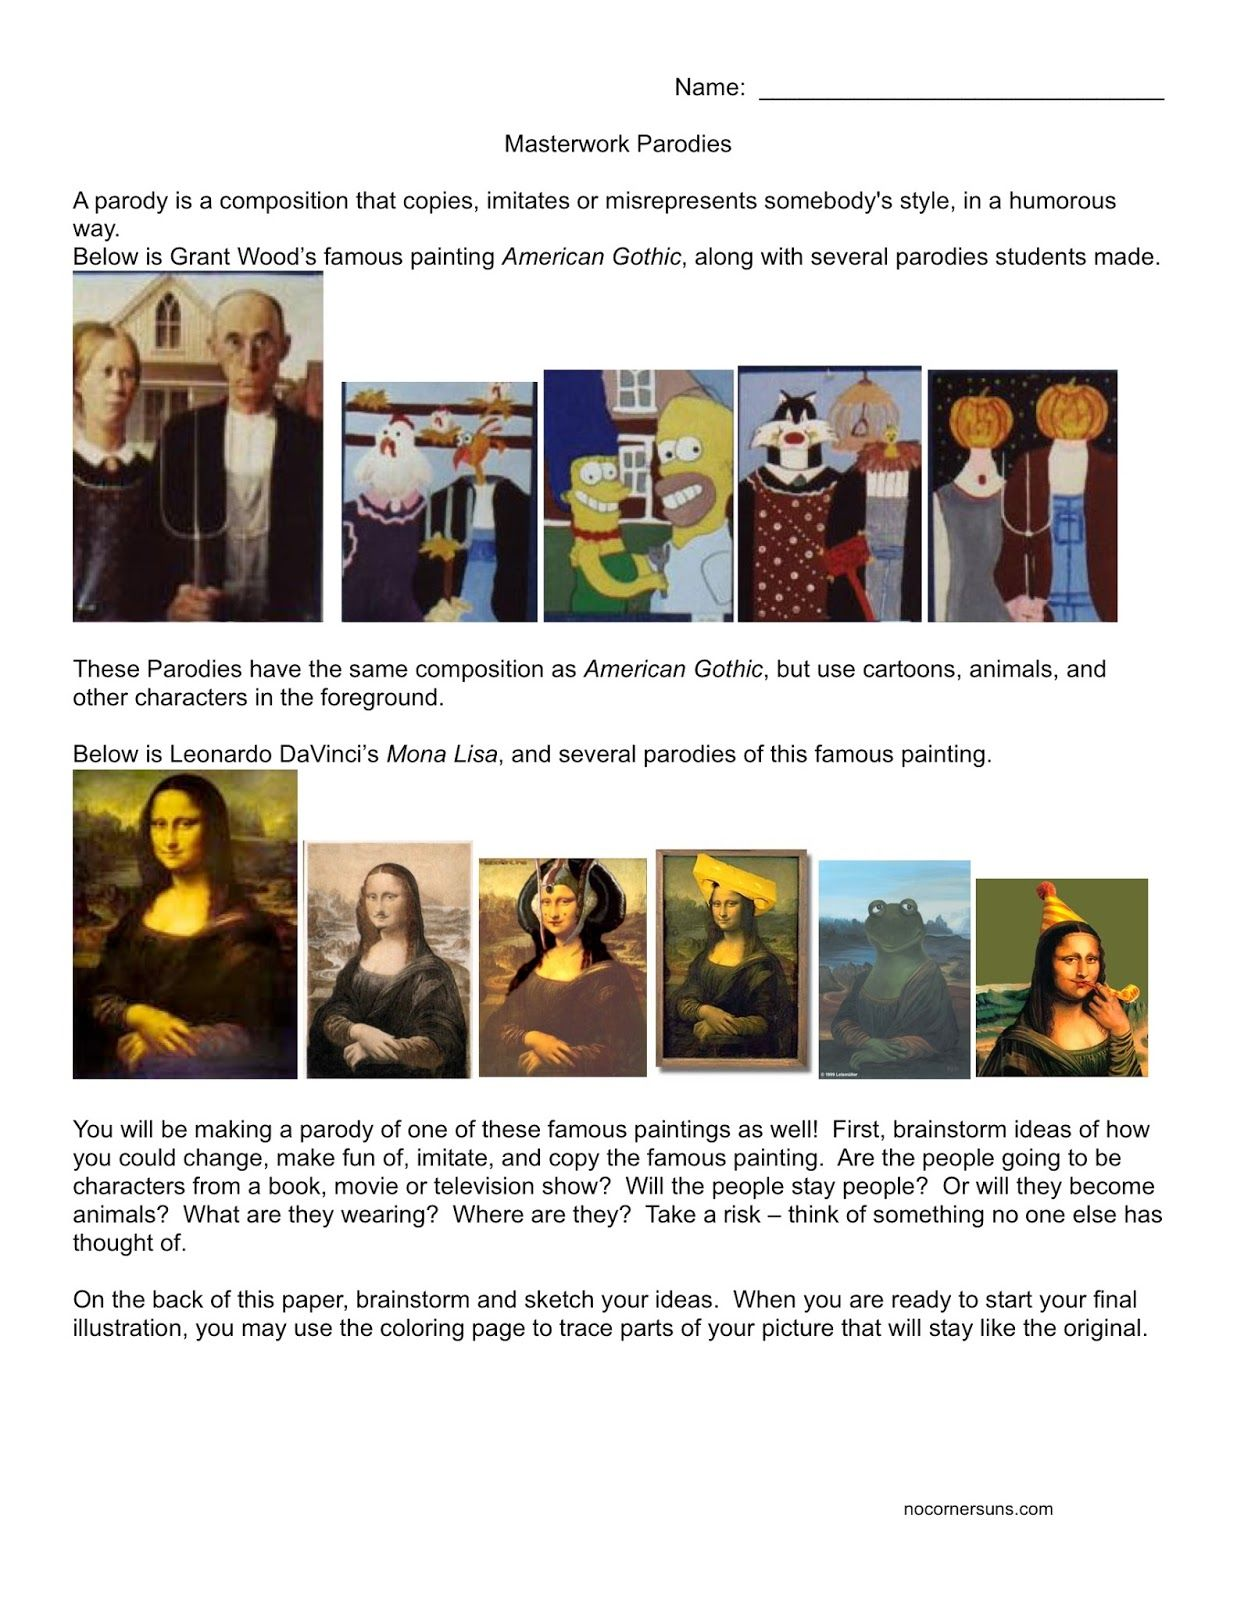 american gothic mona lisa parody lesson and handout includes